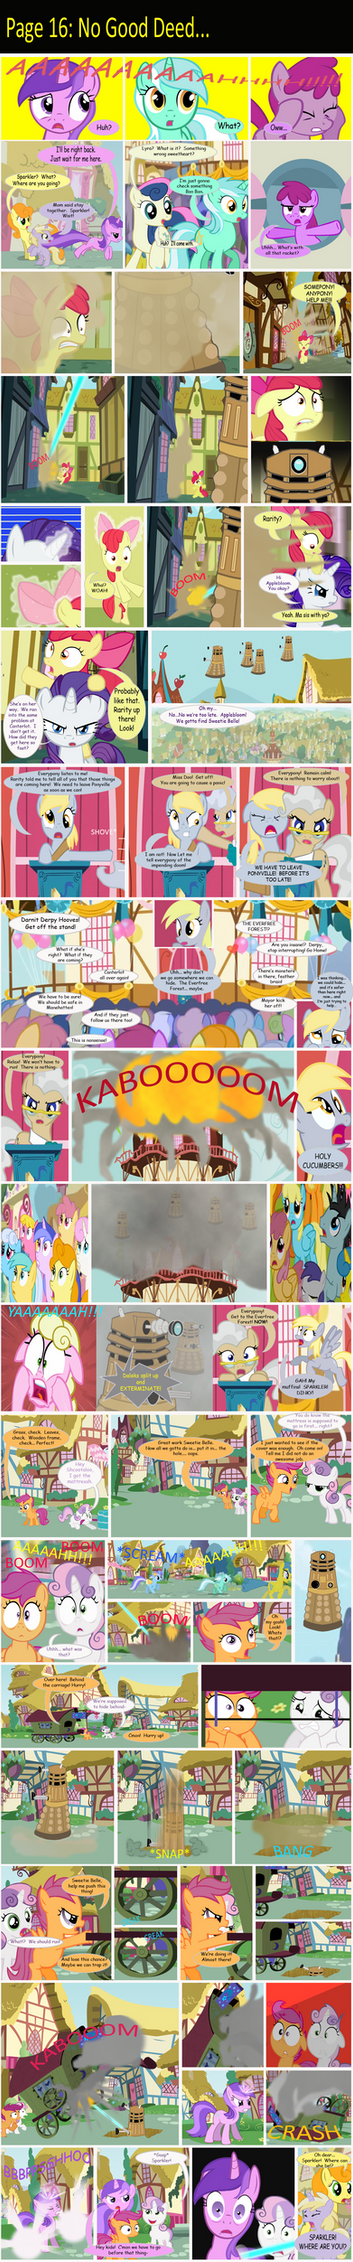 Dr. Whooves: Elder Page 16 by ShwiggityShwah